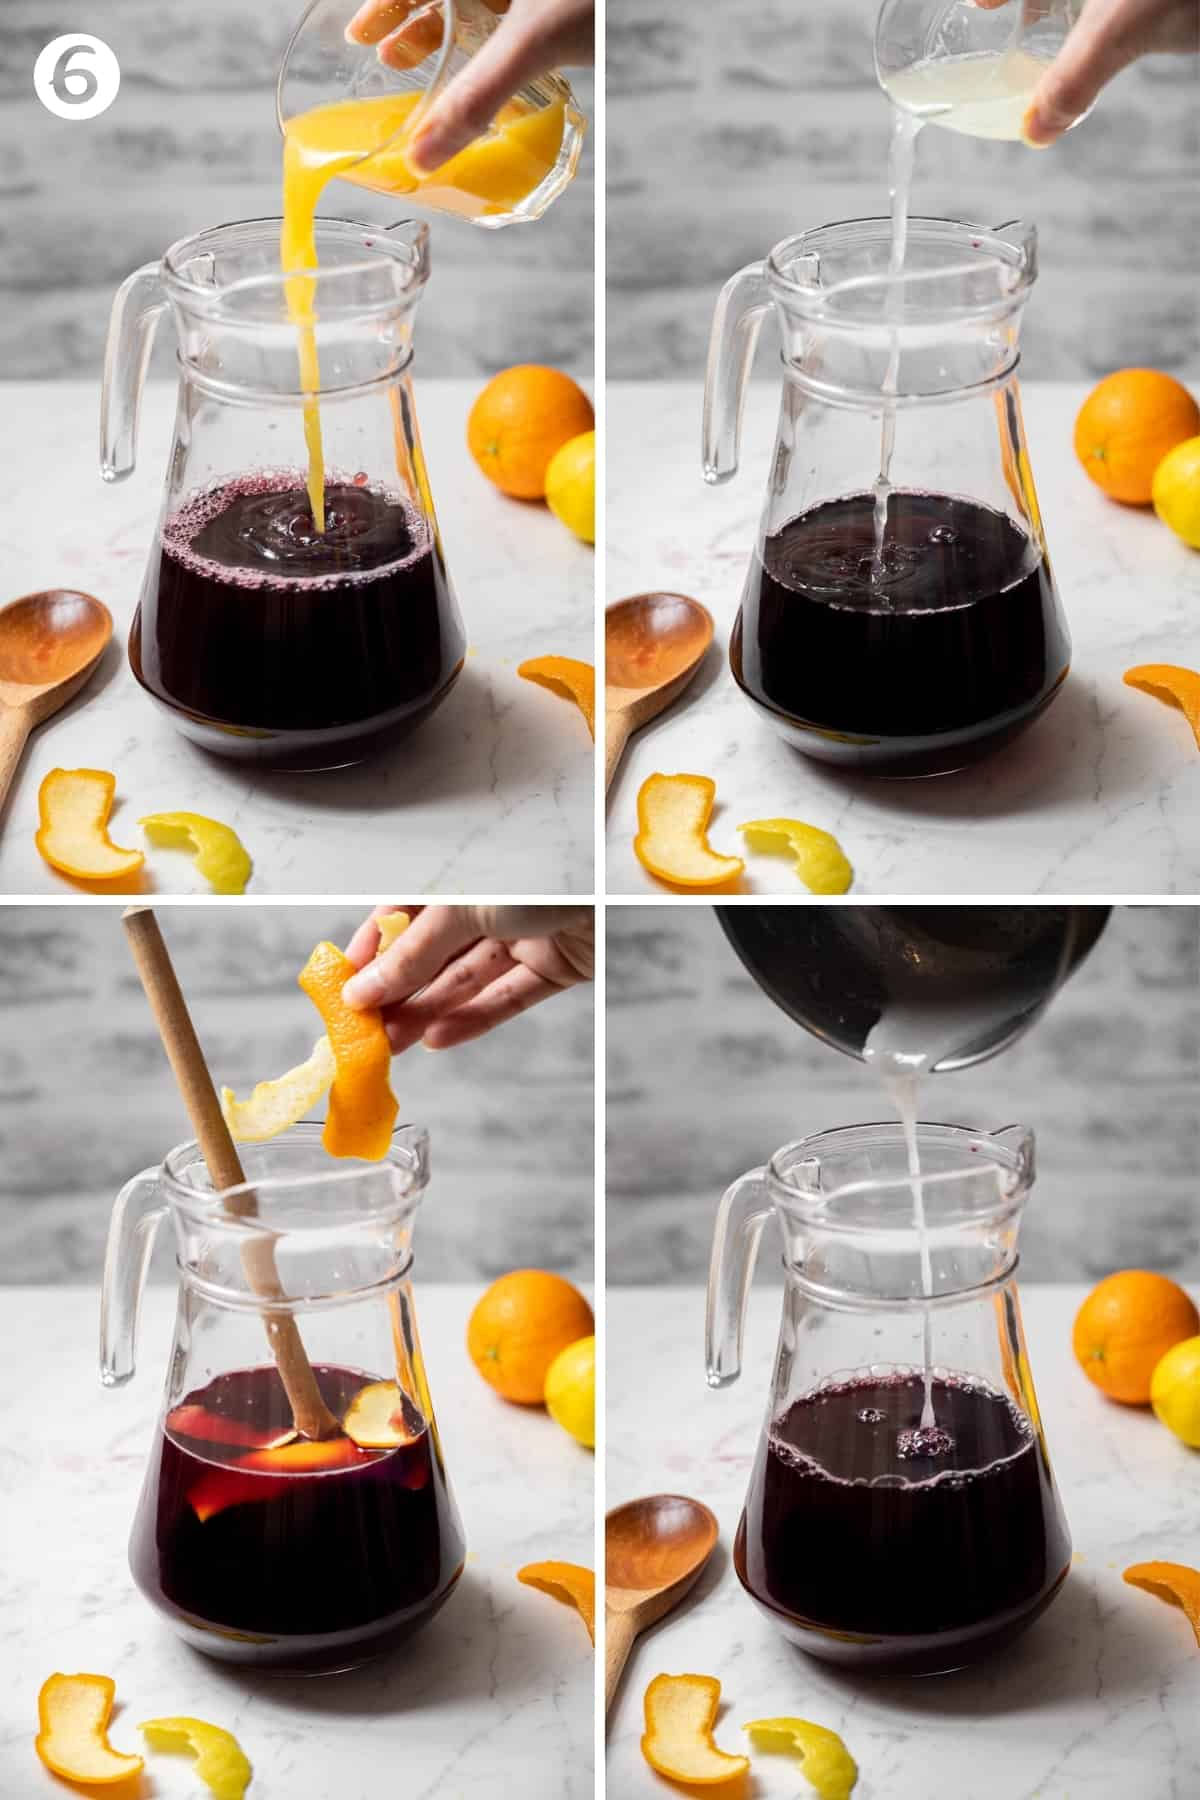 Grid of four photos showing a pitcher of red wine and adding to it orange juice, lemon juice, citrus peel and simple syrup.